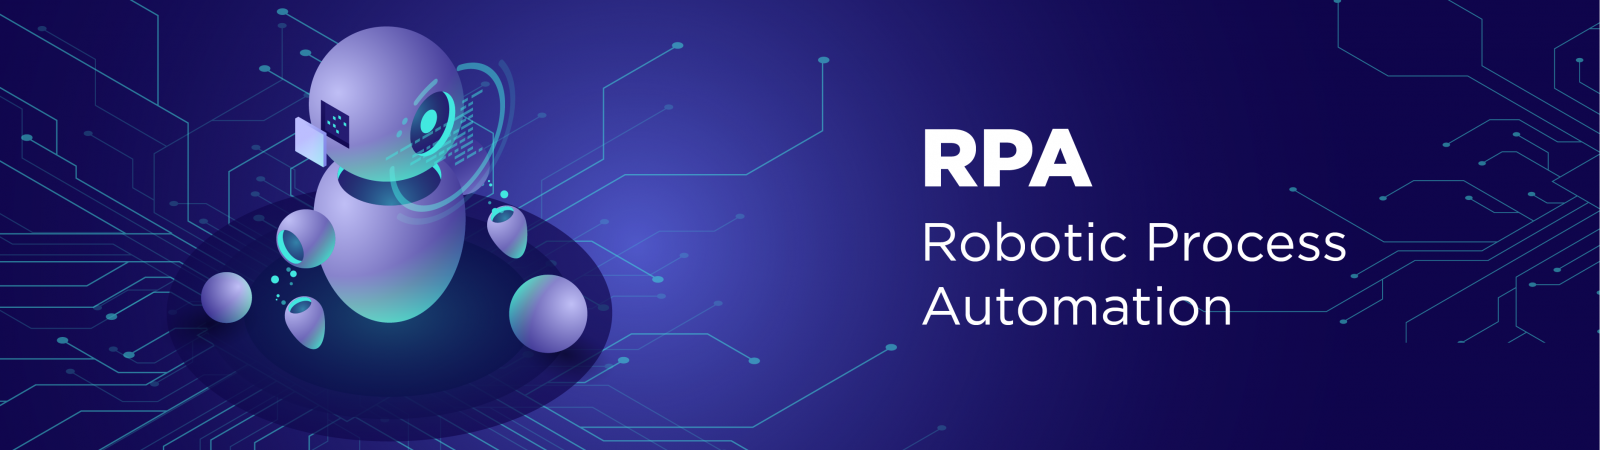 RPA-Banner